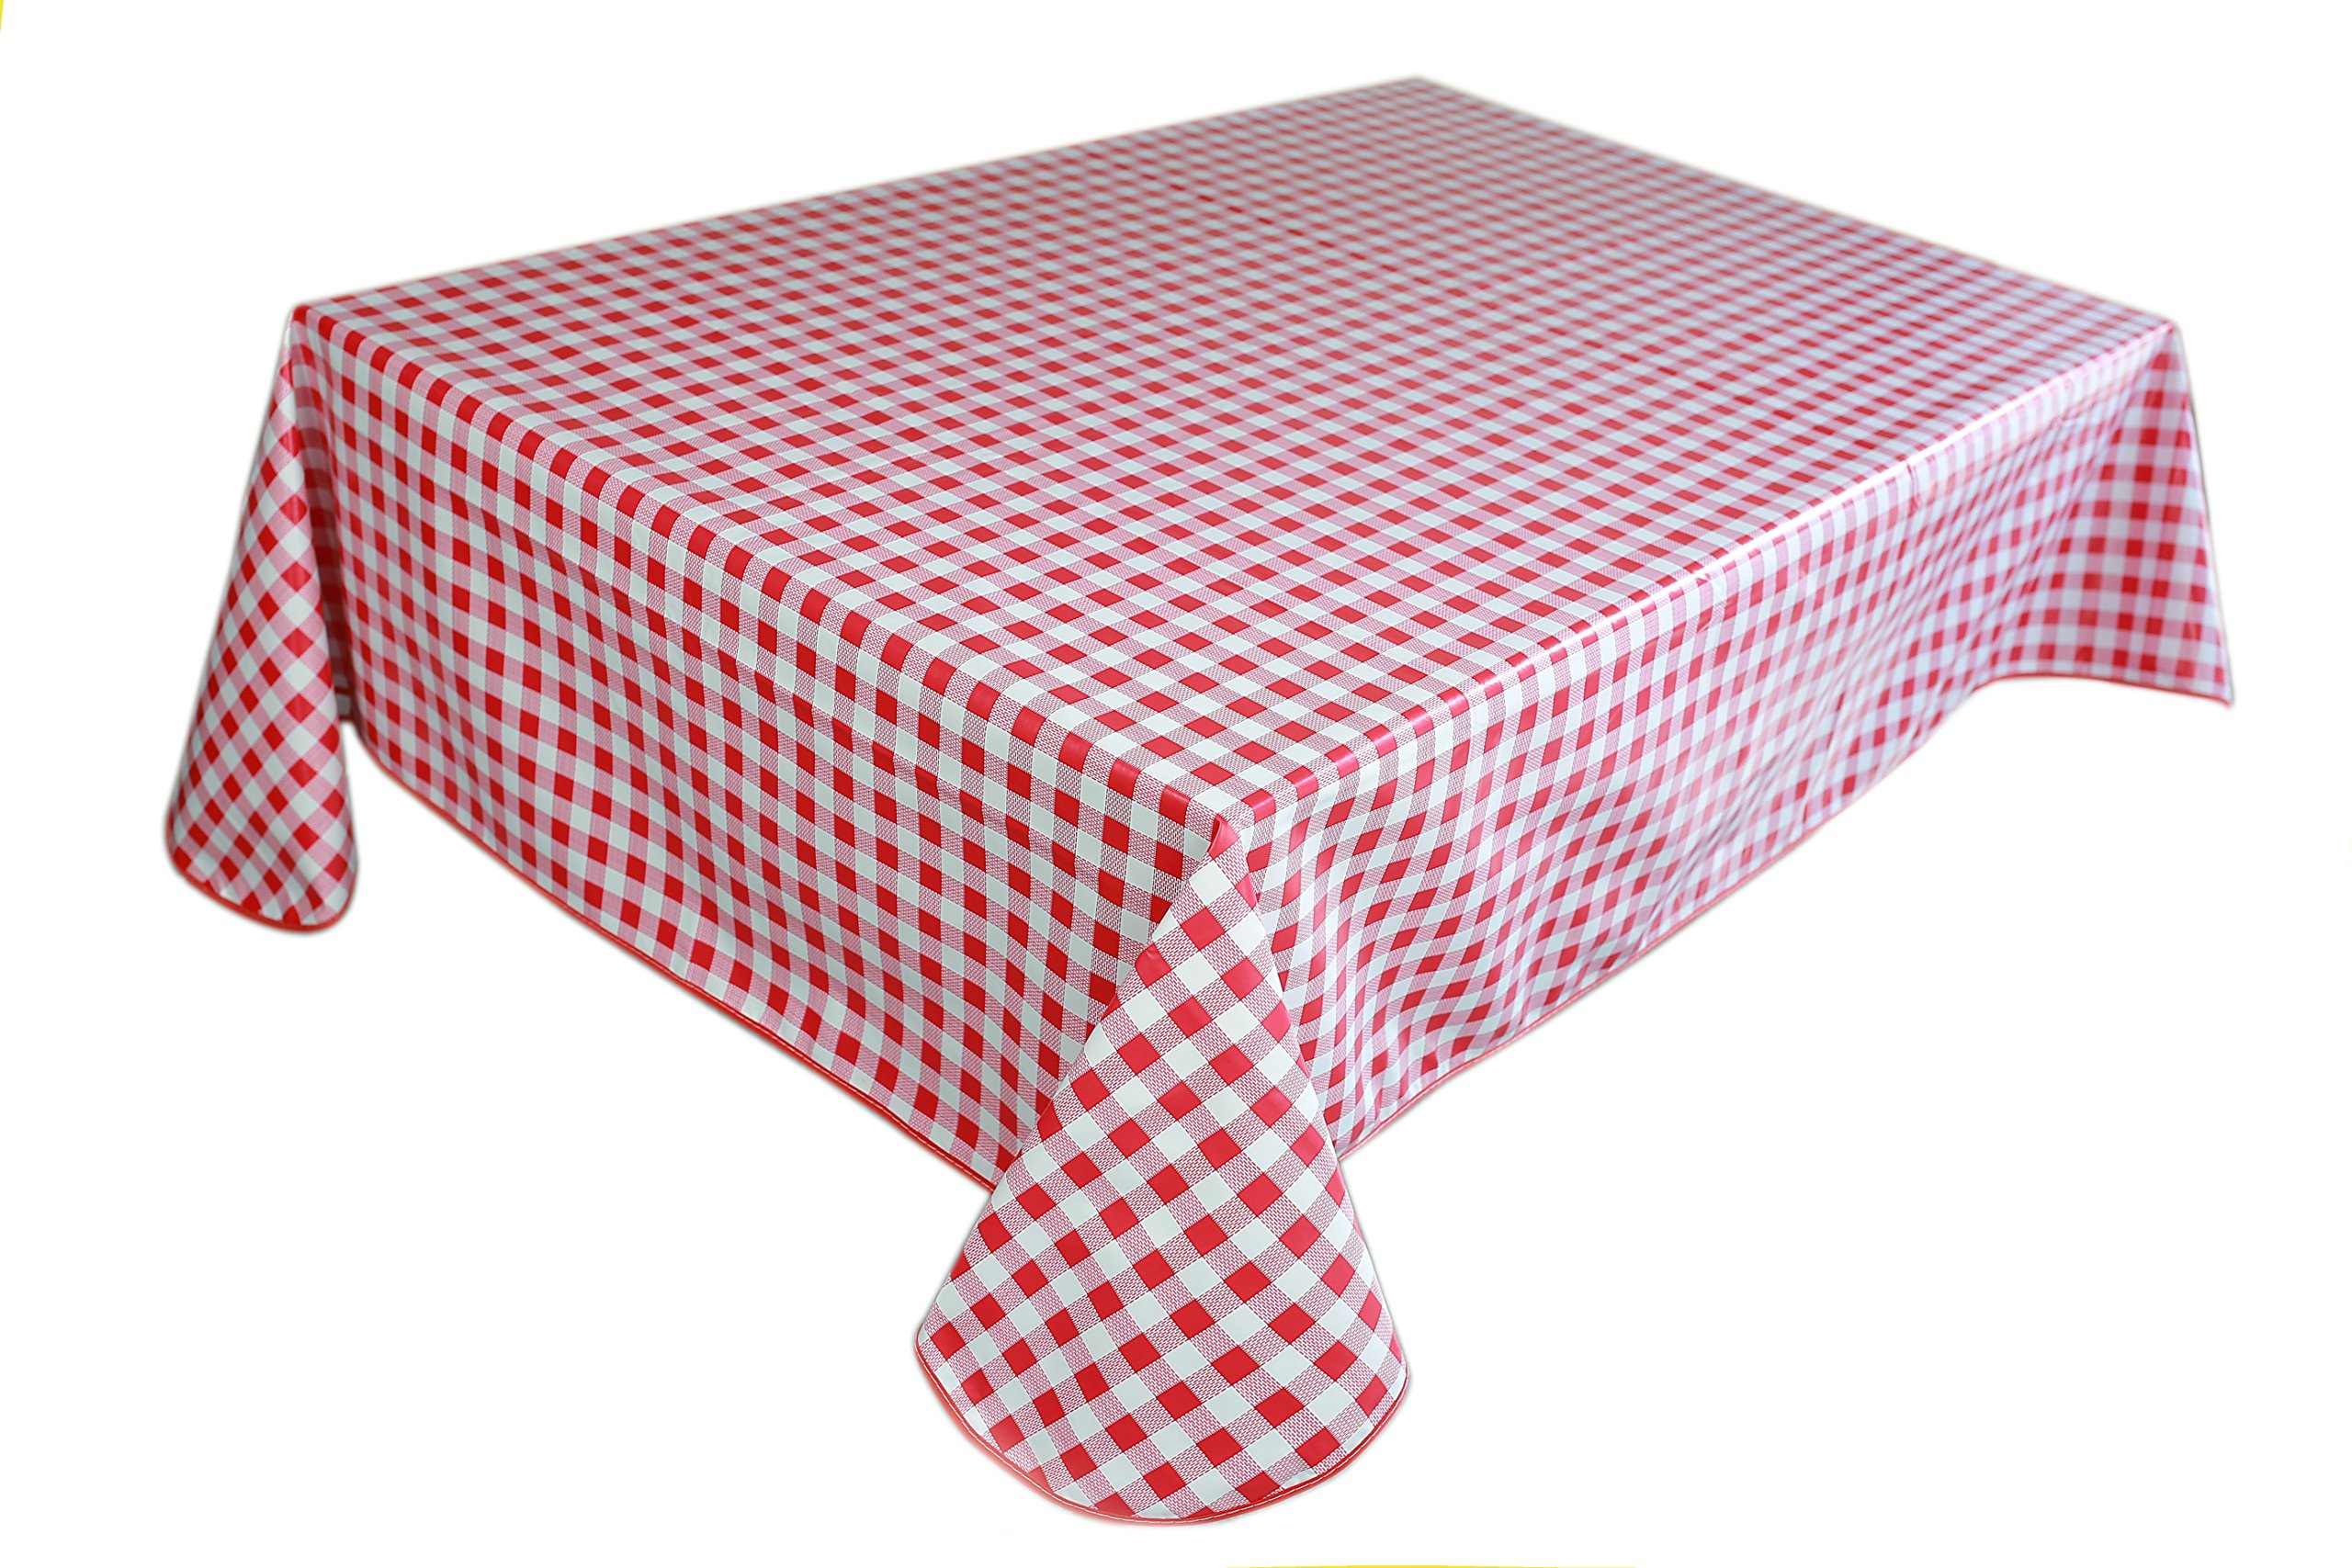 Lavin Tablecloth PVC Wipe Clean Checker Pattern Table Cloth Waterproof Edge Finished Oil Cloth Heavy Duty Vinyl Table Cover Rectangle Oilproof Satin-Resistant Home Decoration (Red)